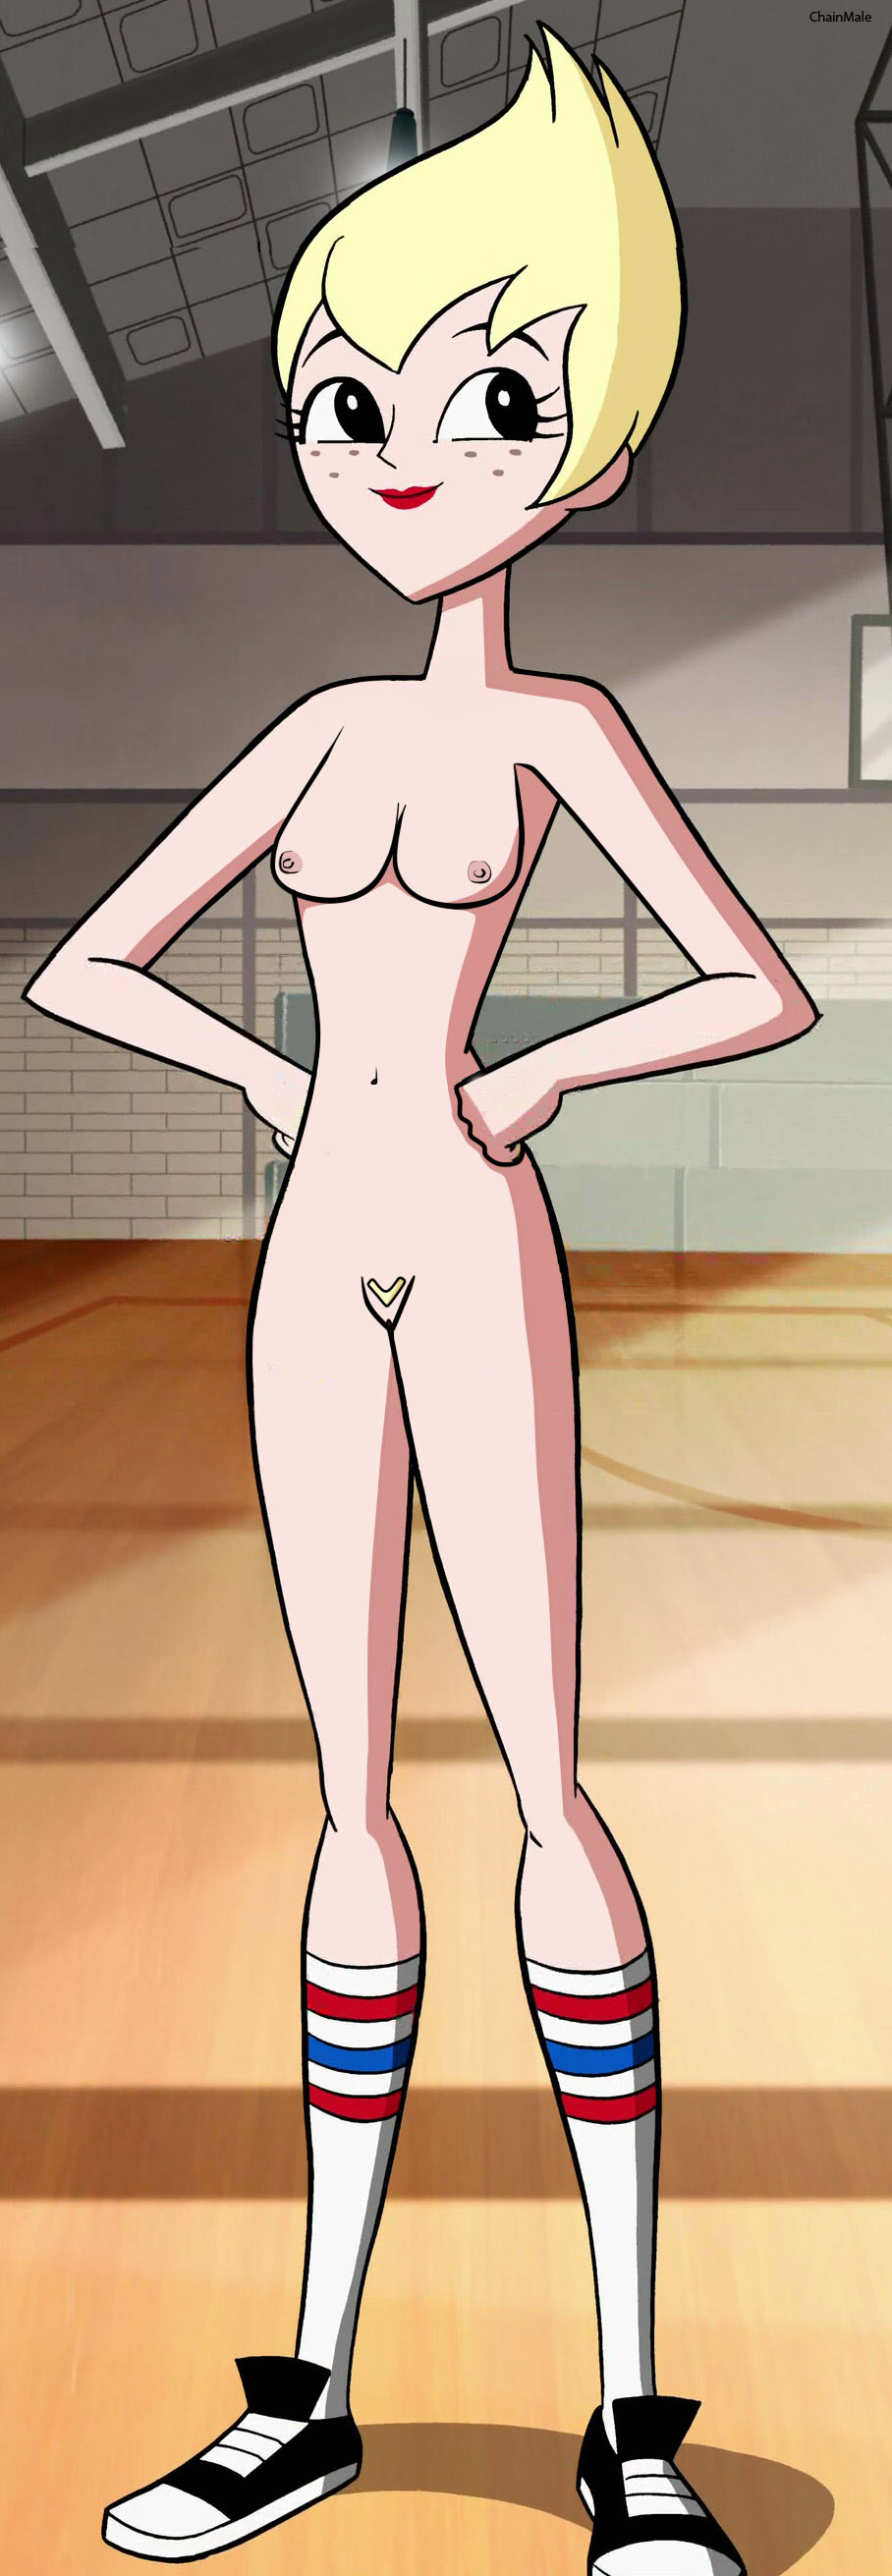 sym-bionic titan hentai Gayest picture on the internet